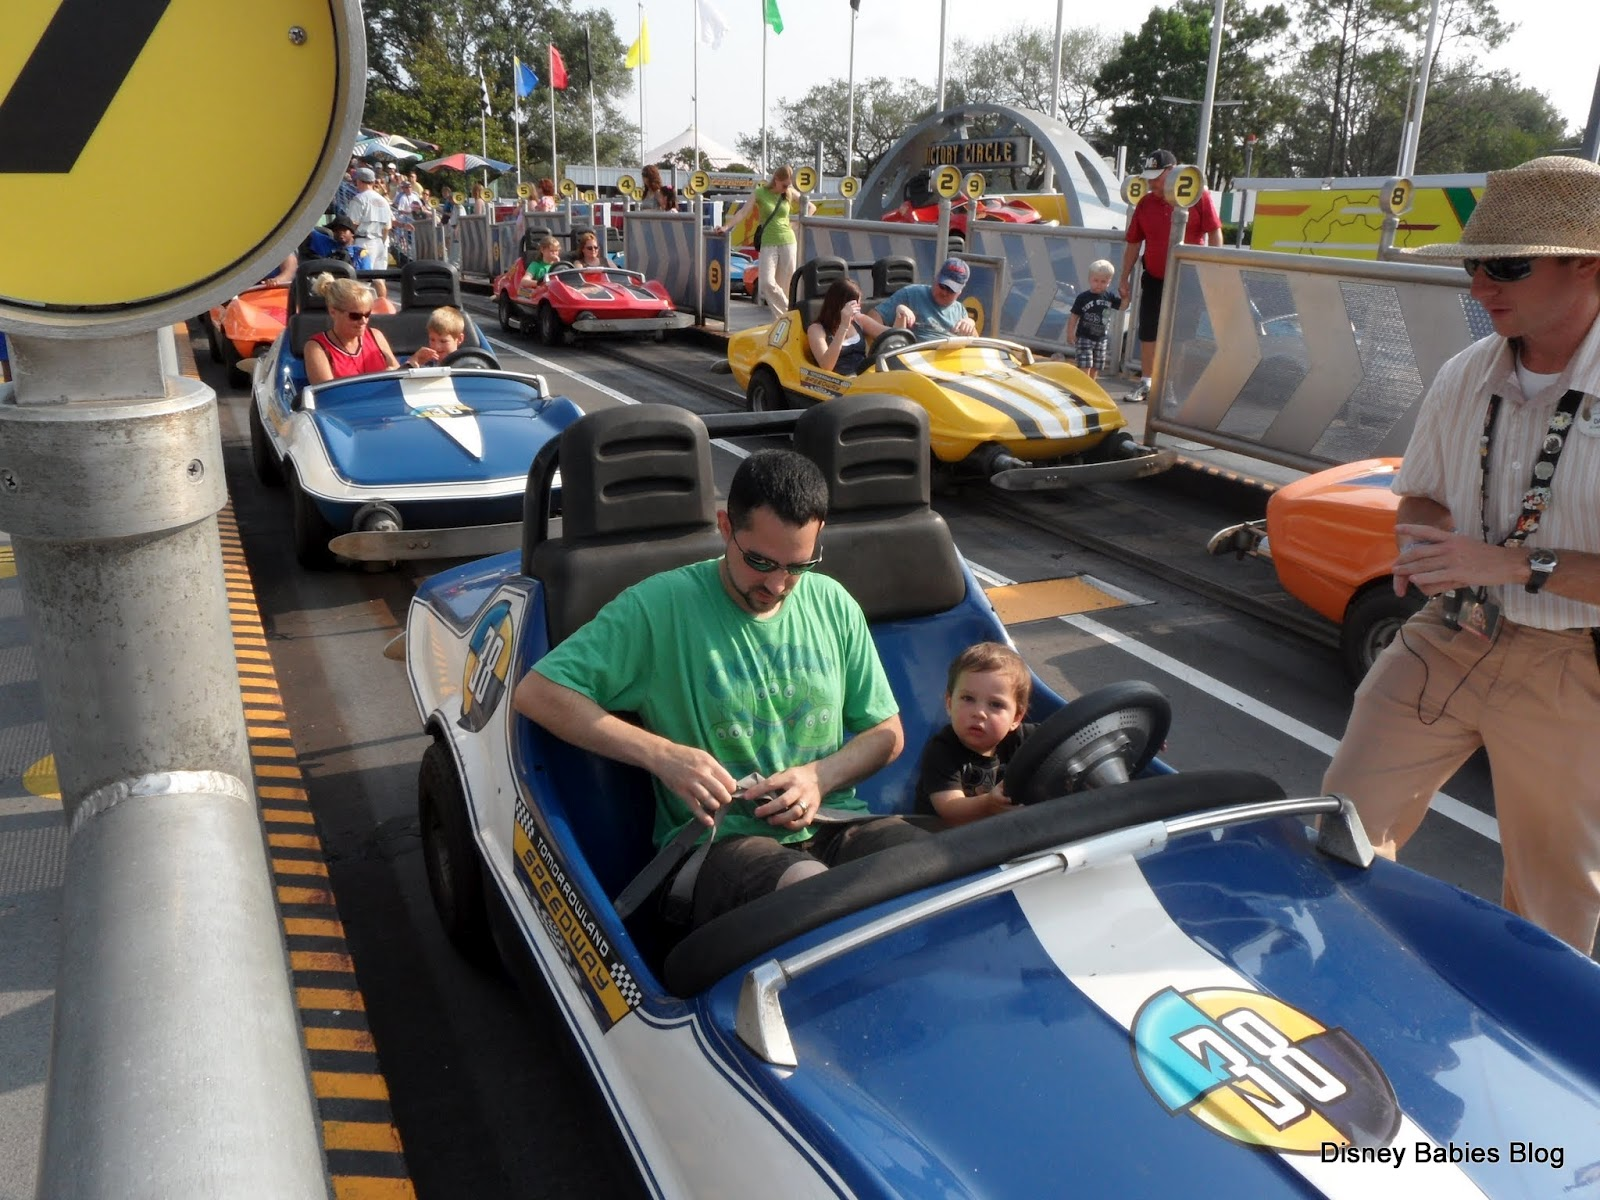 Disney Babies Blog: Driving in the Future